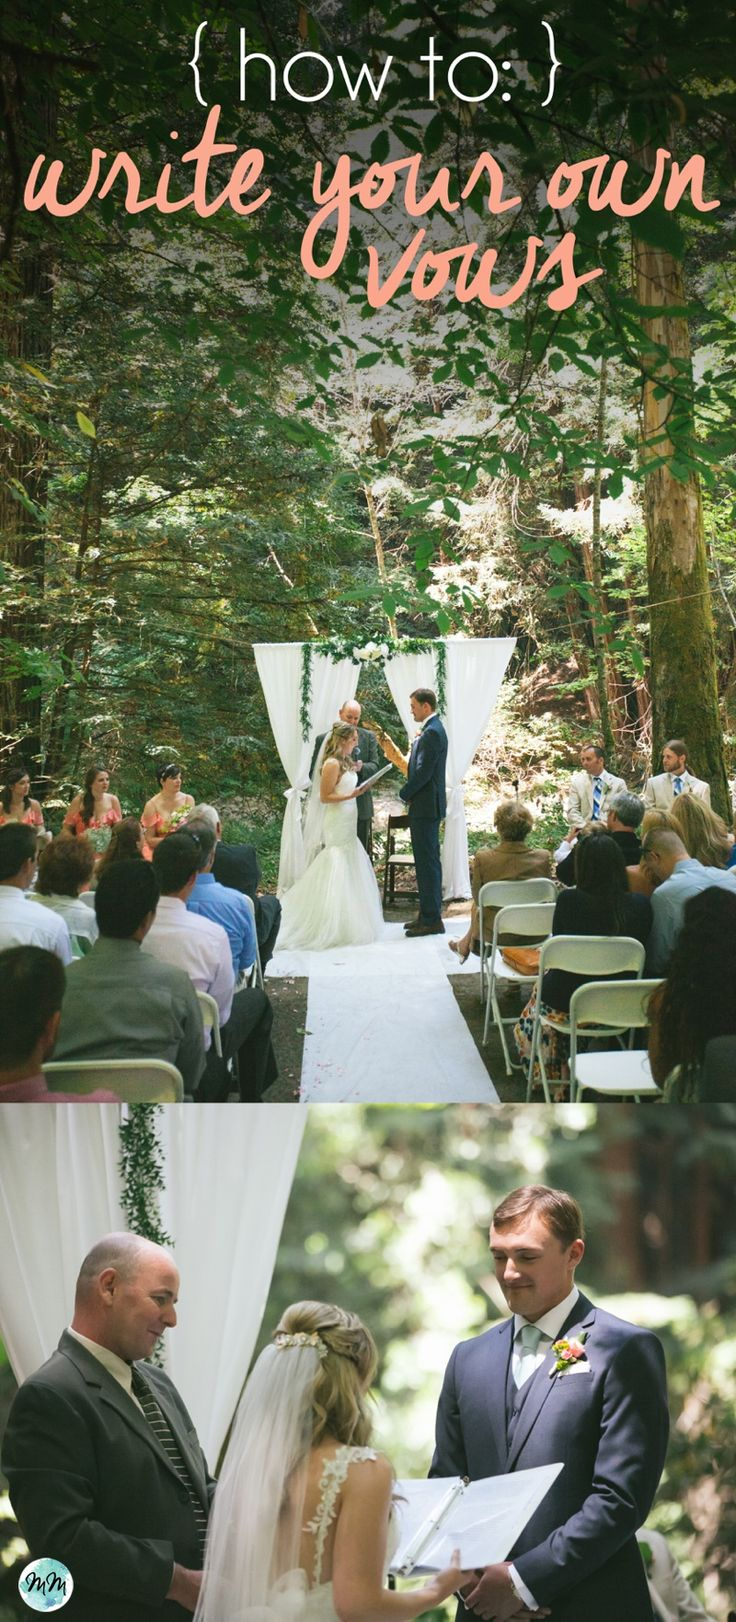 how to write a wedding ceremony Find and save ideas about wedding ceremony script on pinterest wow people don't write their own anymore wedding vow ideas both traditional and non-traditional.